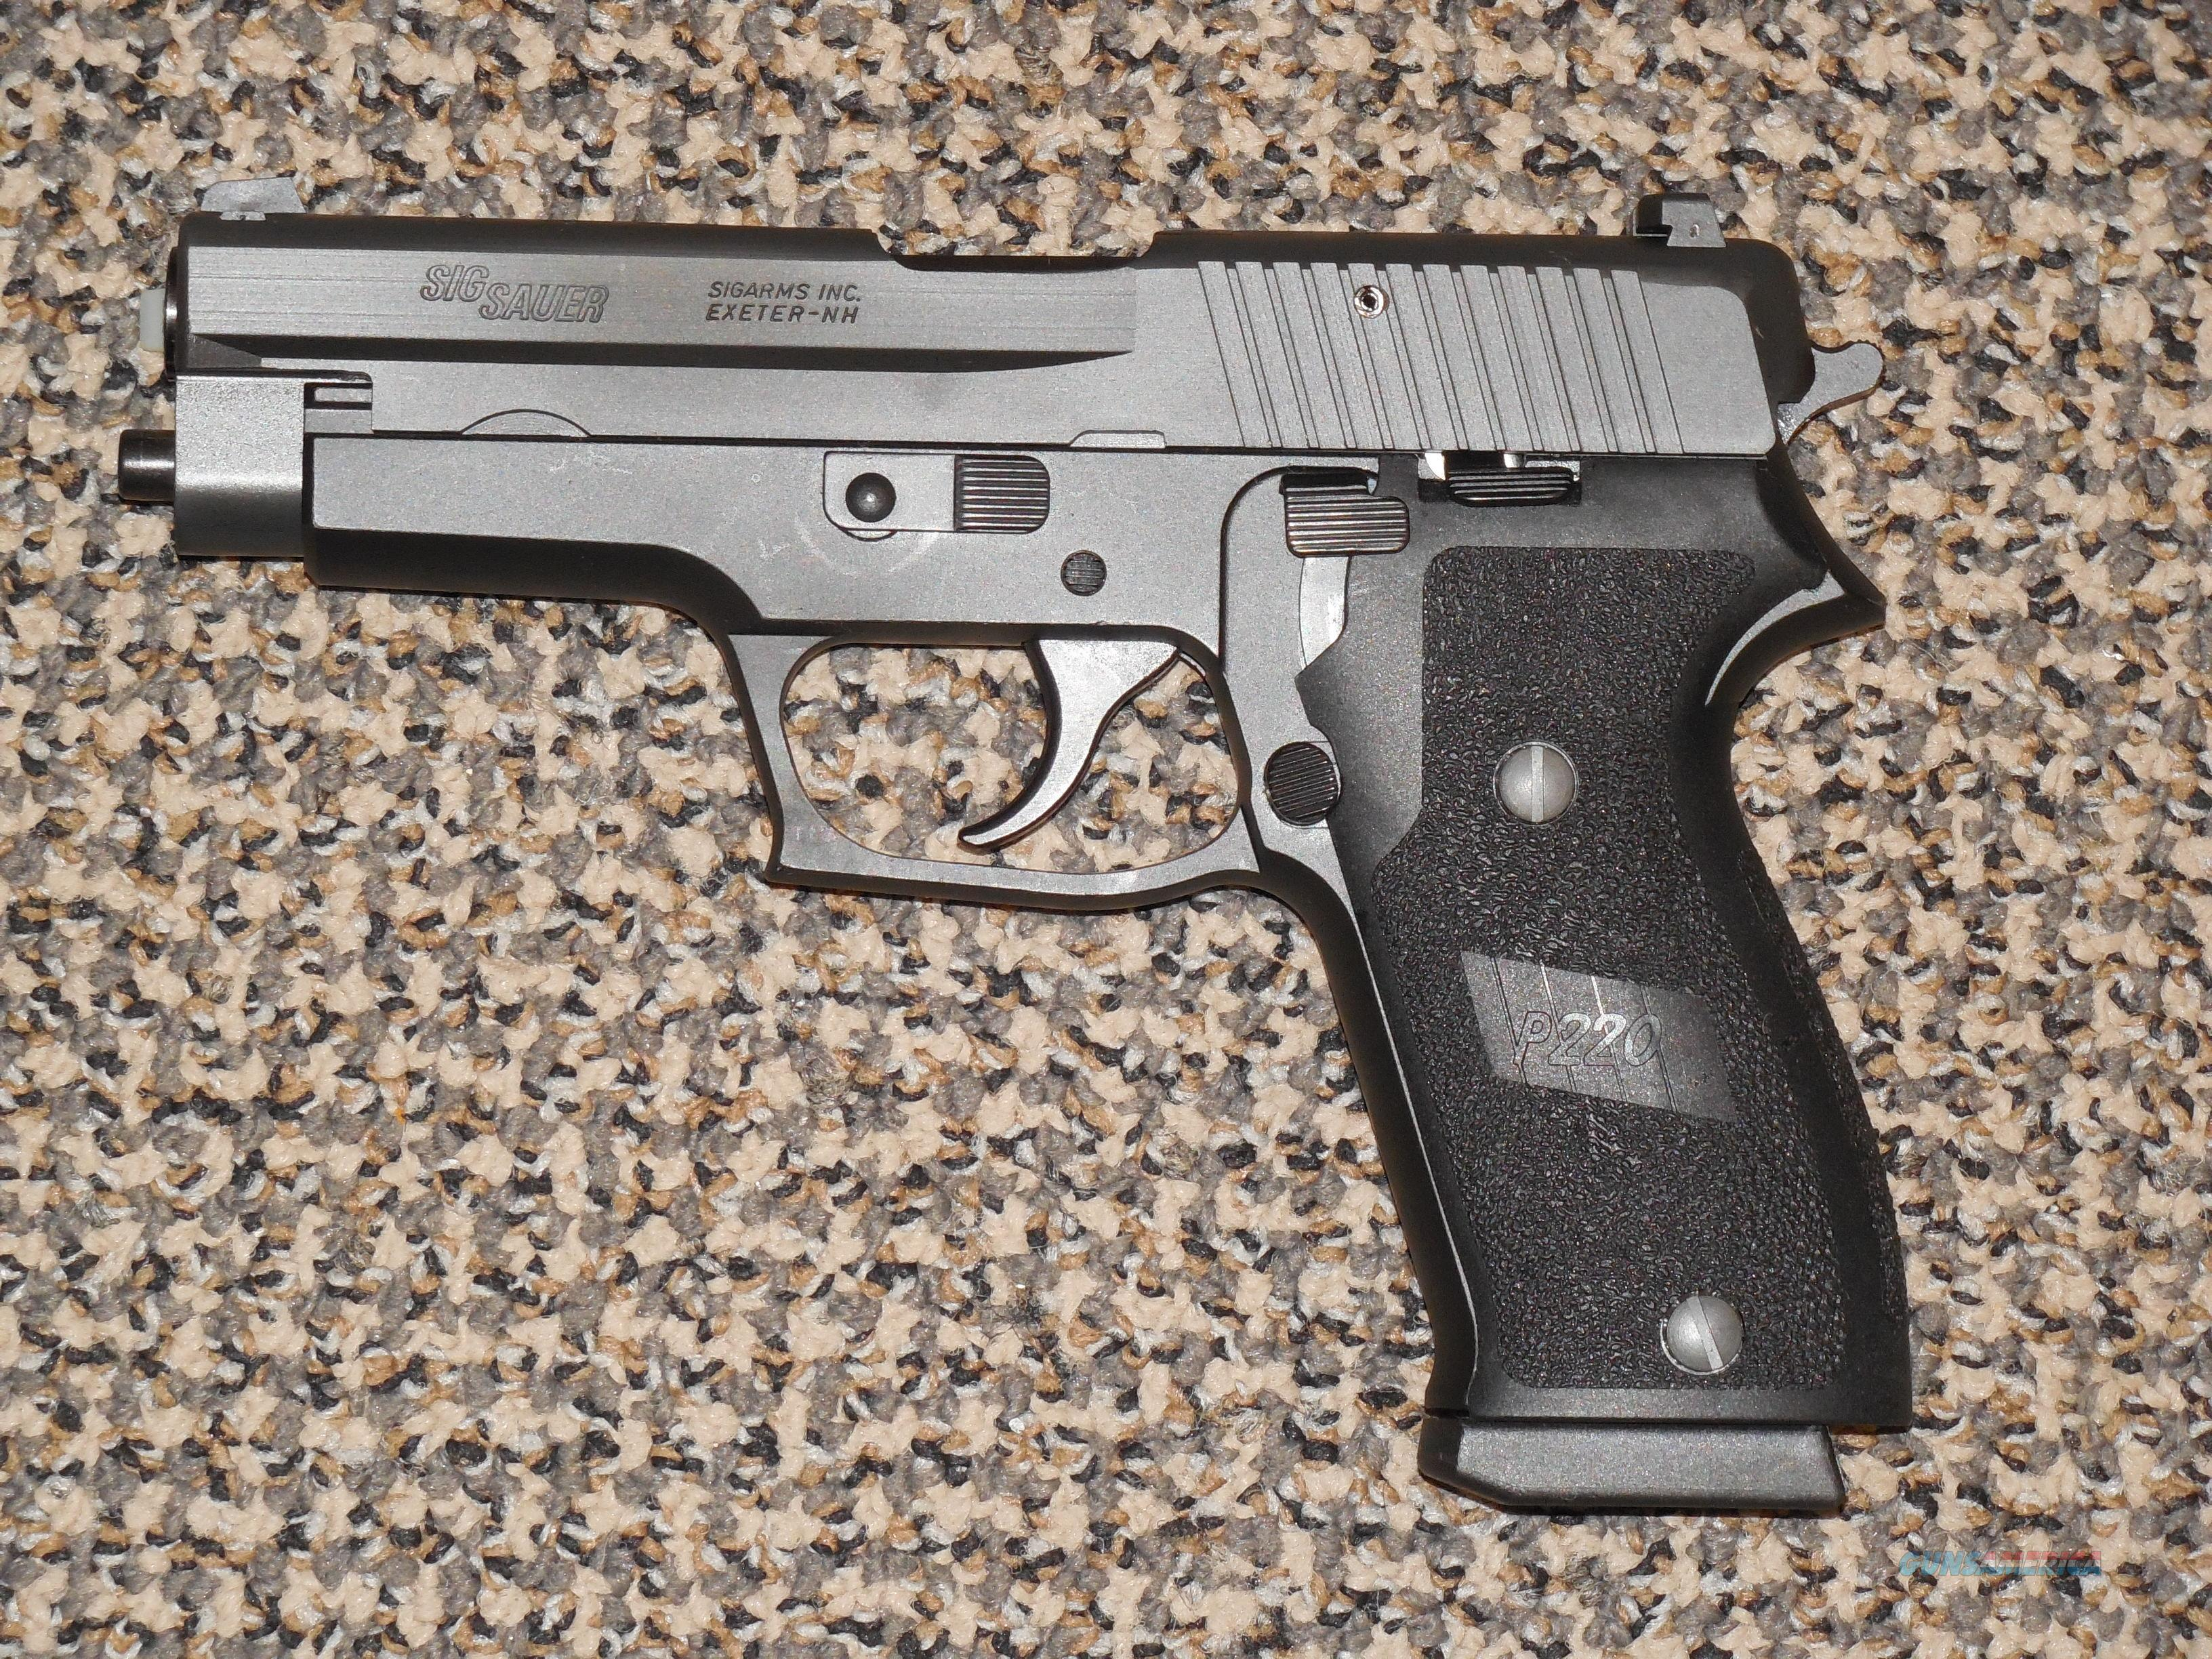 SIG SAUER P-220 FACTORY REFURBISHED  45 ACP PISTOL